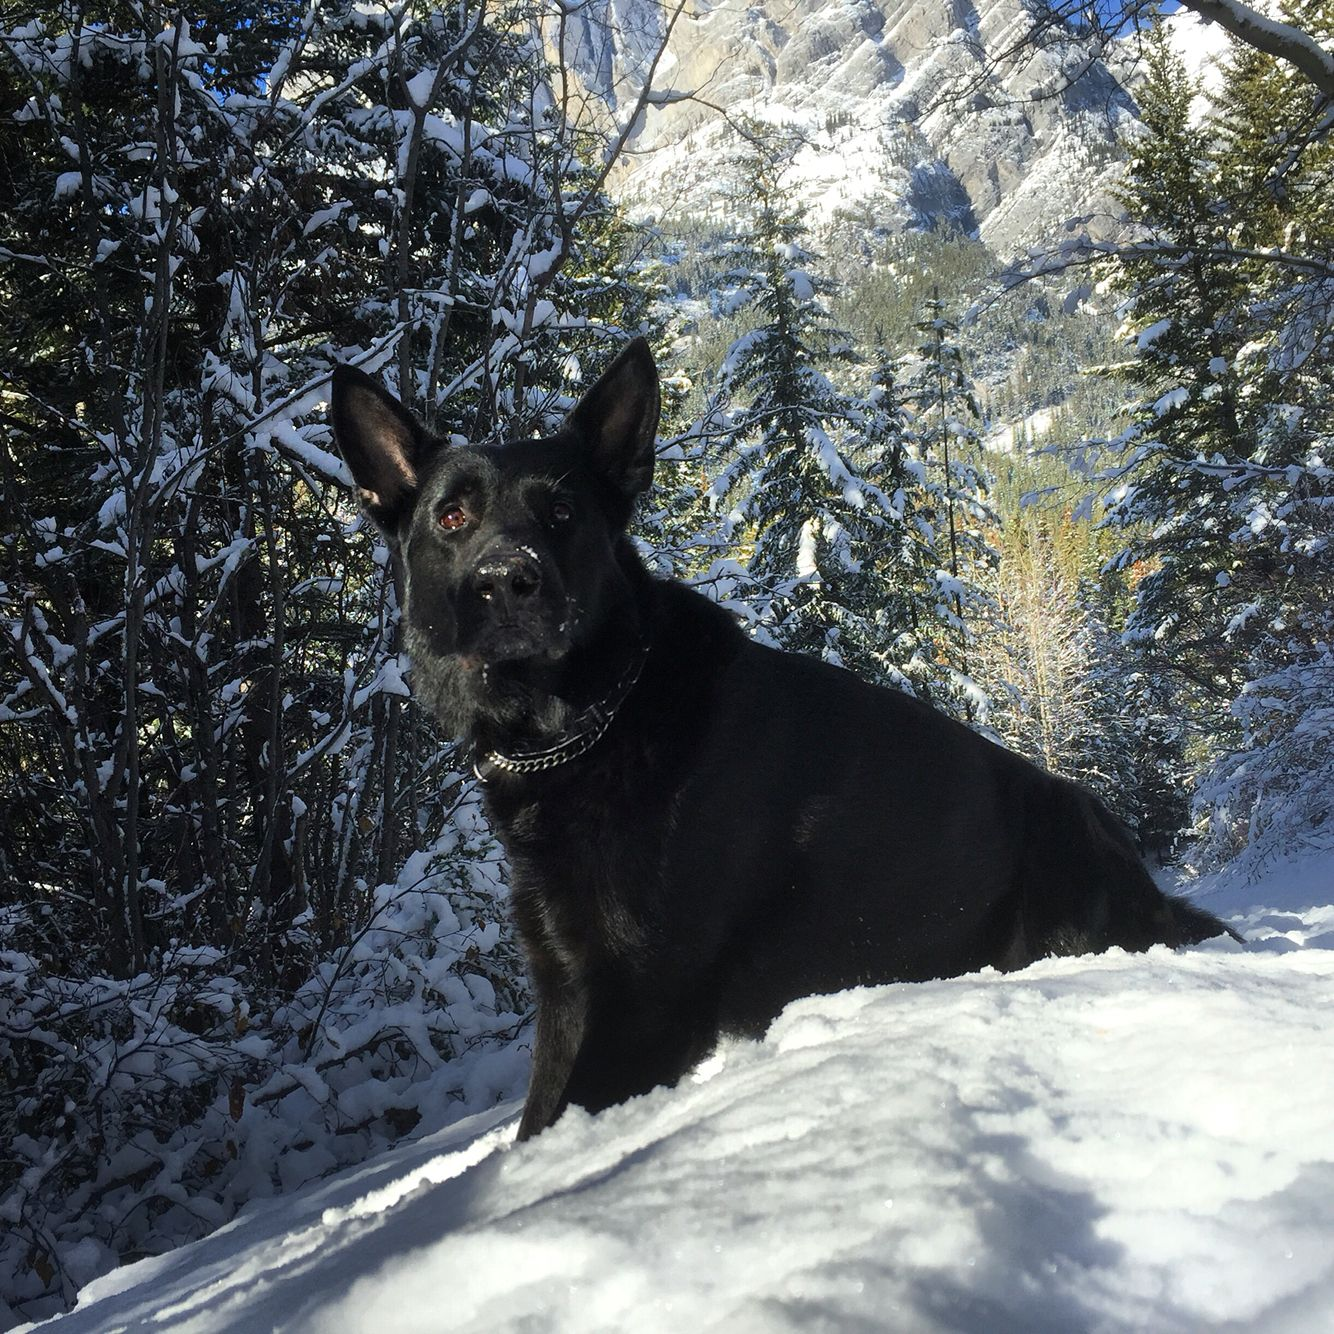 The Black Dog A German Shepherd Ventured Out To Kananaskis On A